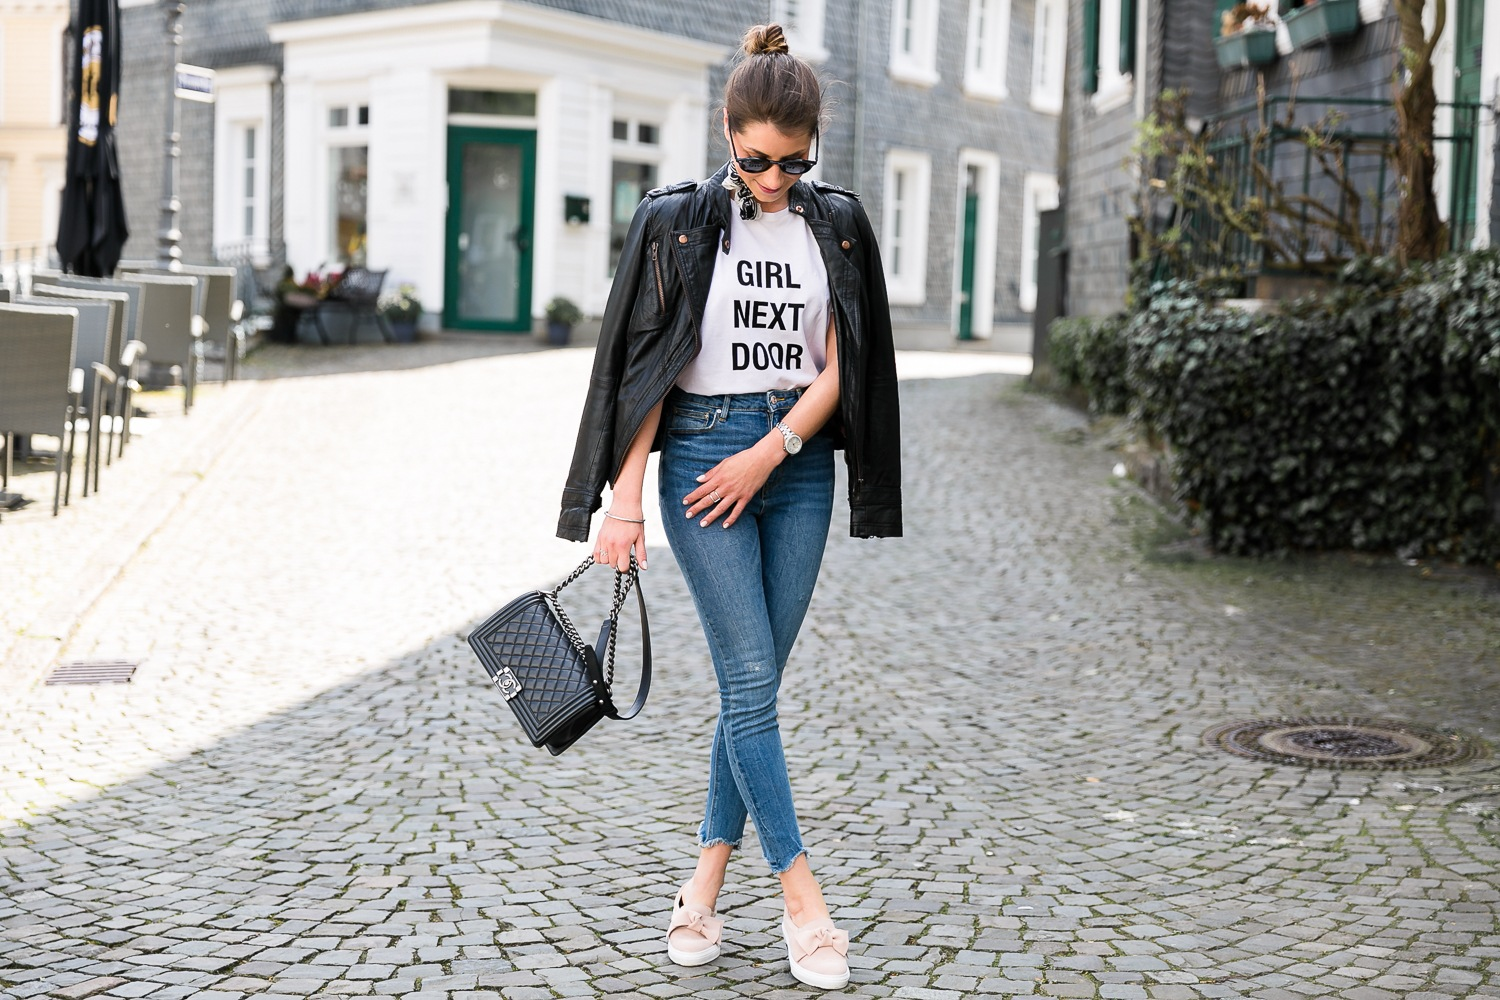 slip-ons outfit skinny jeans bandana leatherjacket t-shirt chanel boy bag